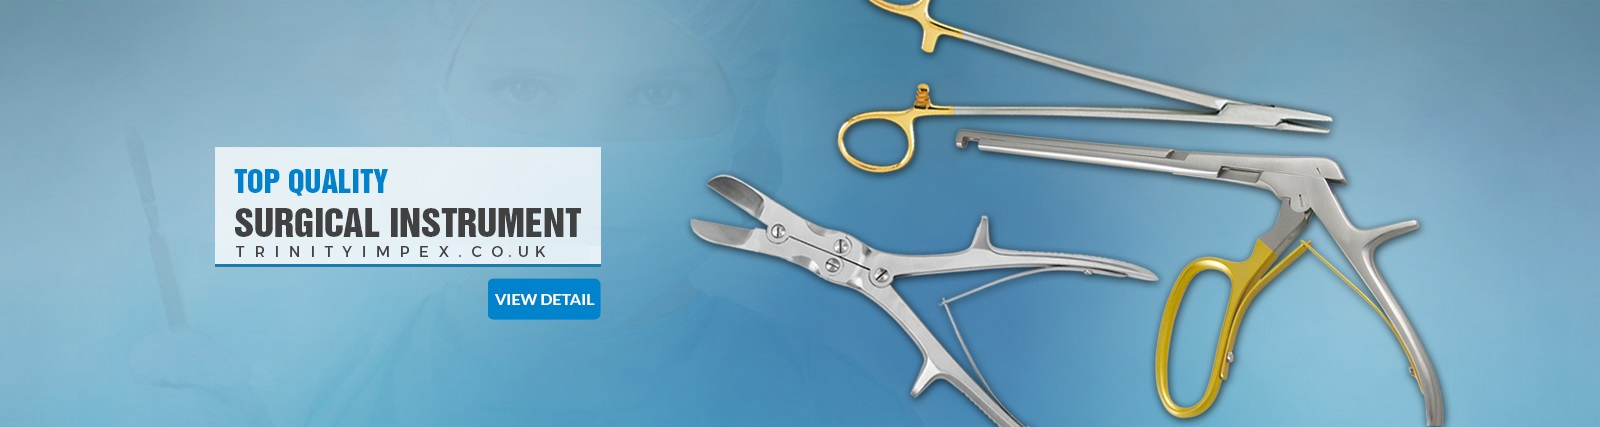 Surgical Instruments-1